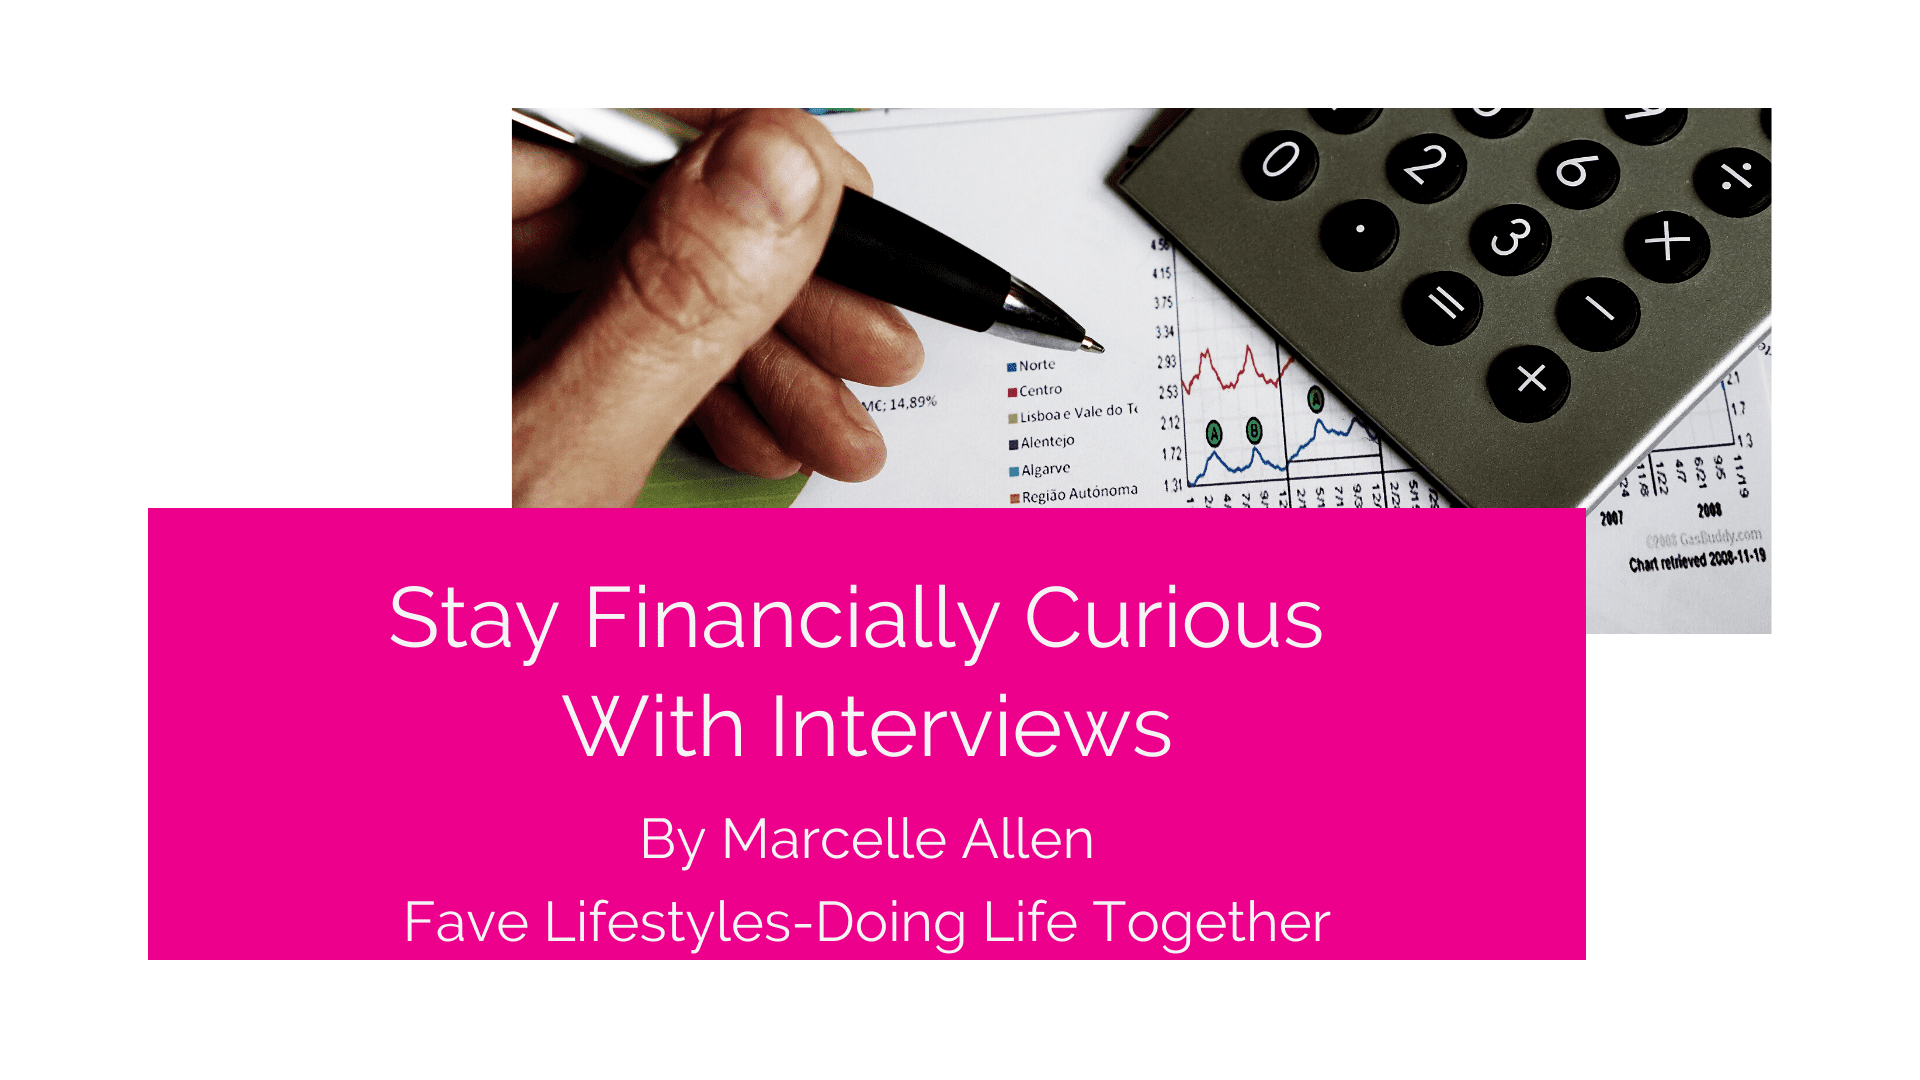 Stay Financially Curious with Interviews